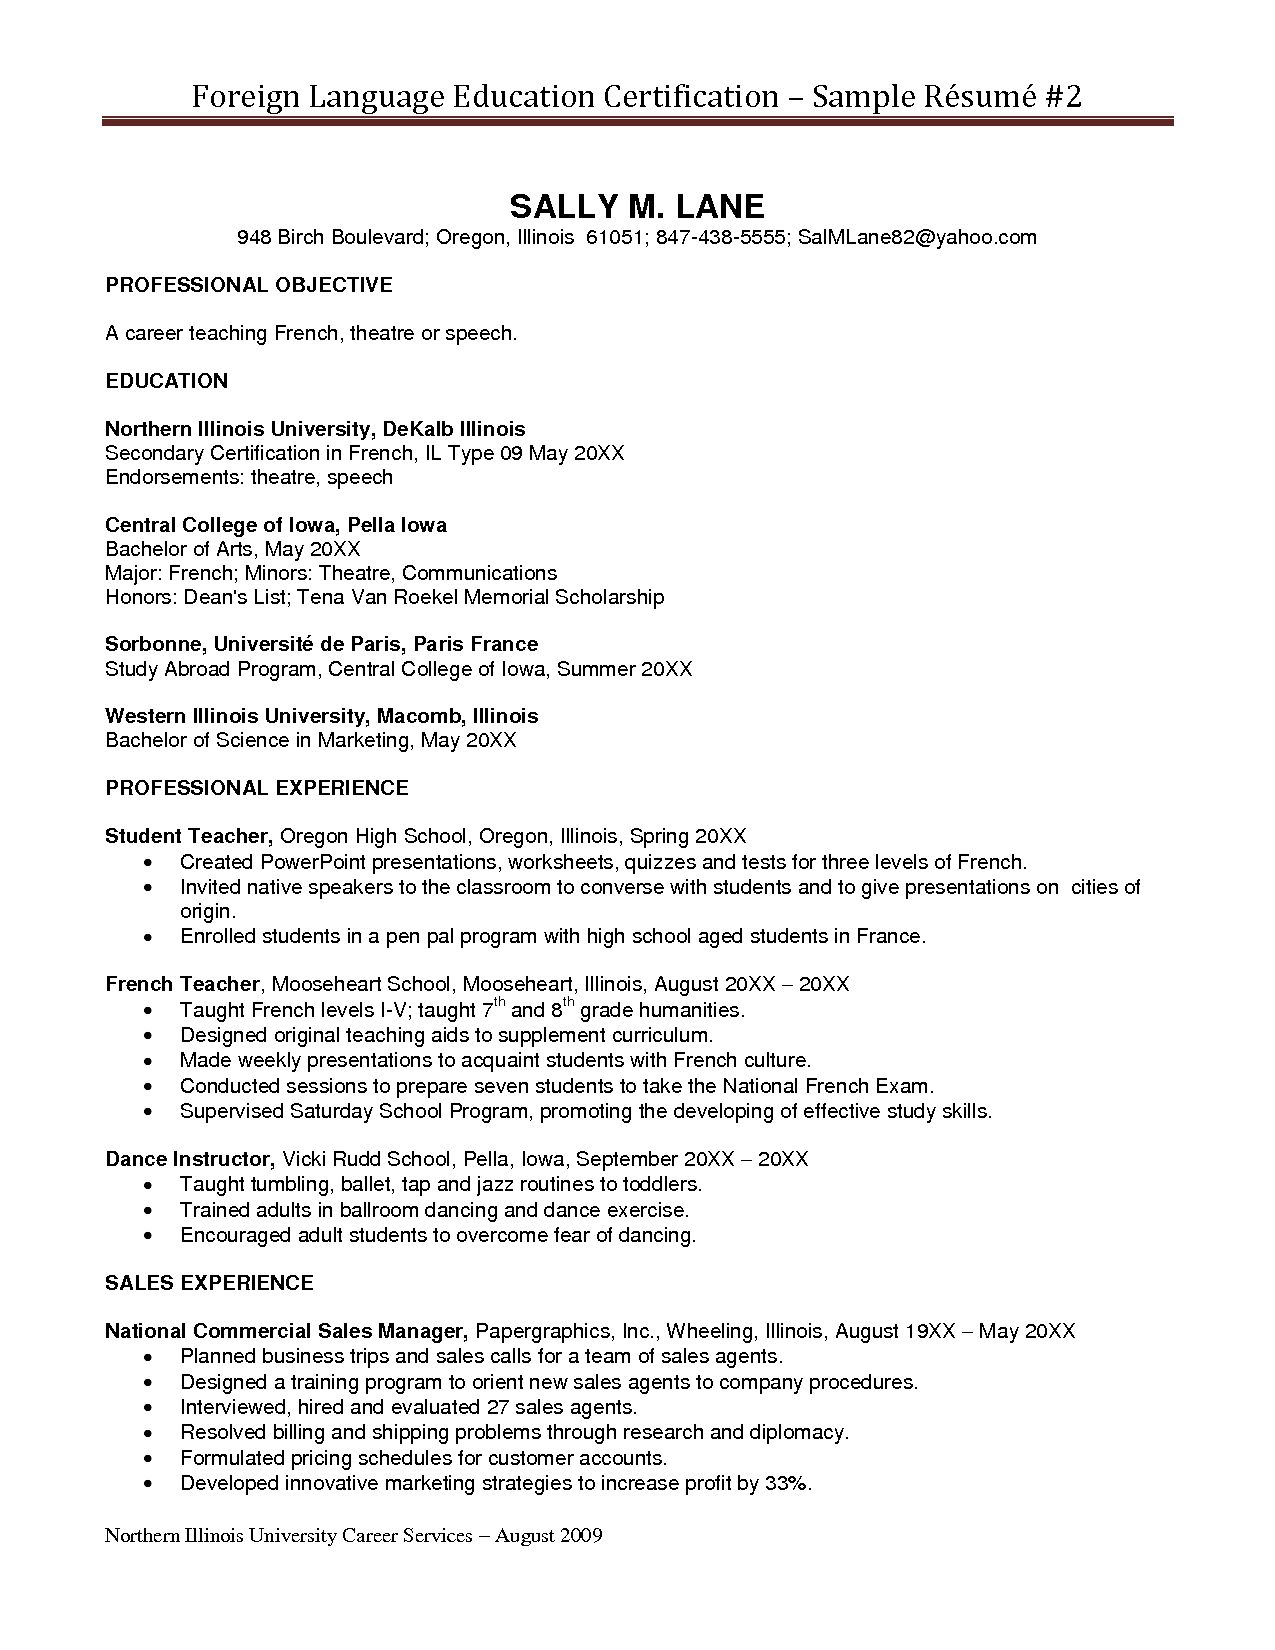 Examples Of Resume Certifications On A Resume Certification On Resume Example